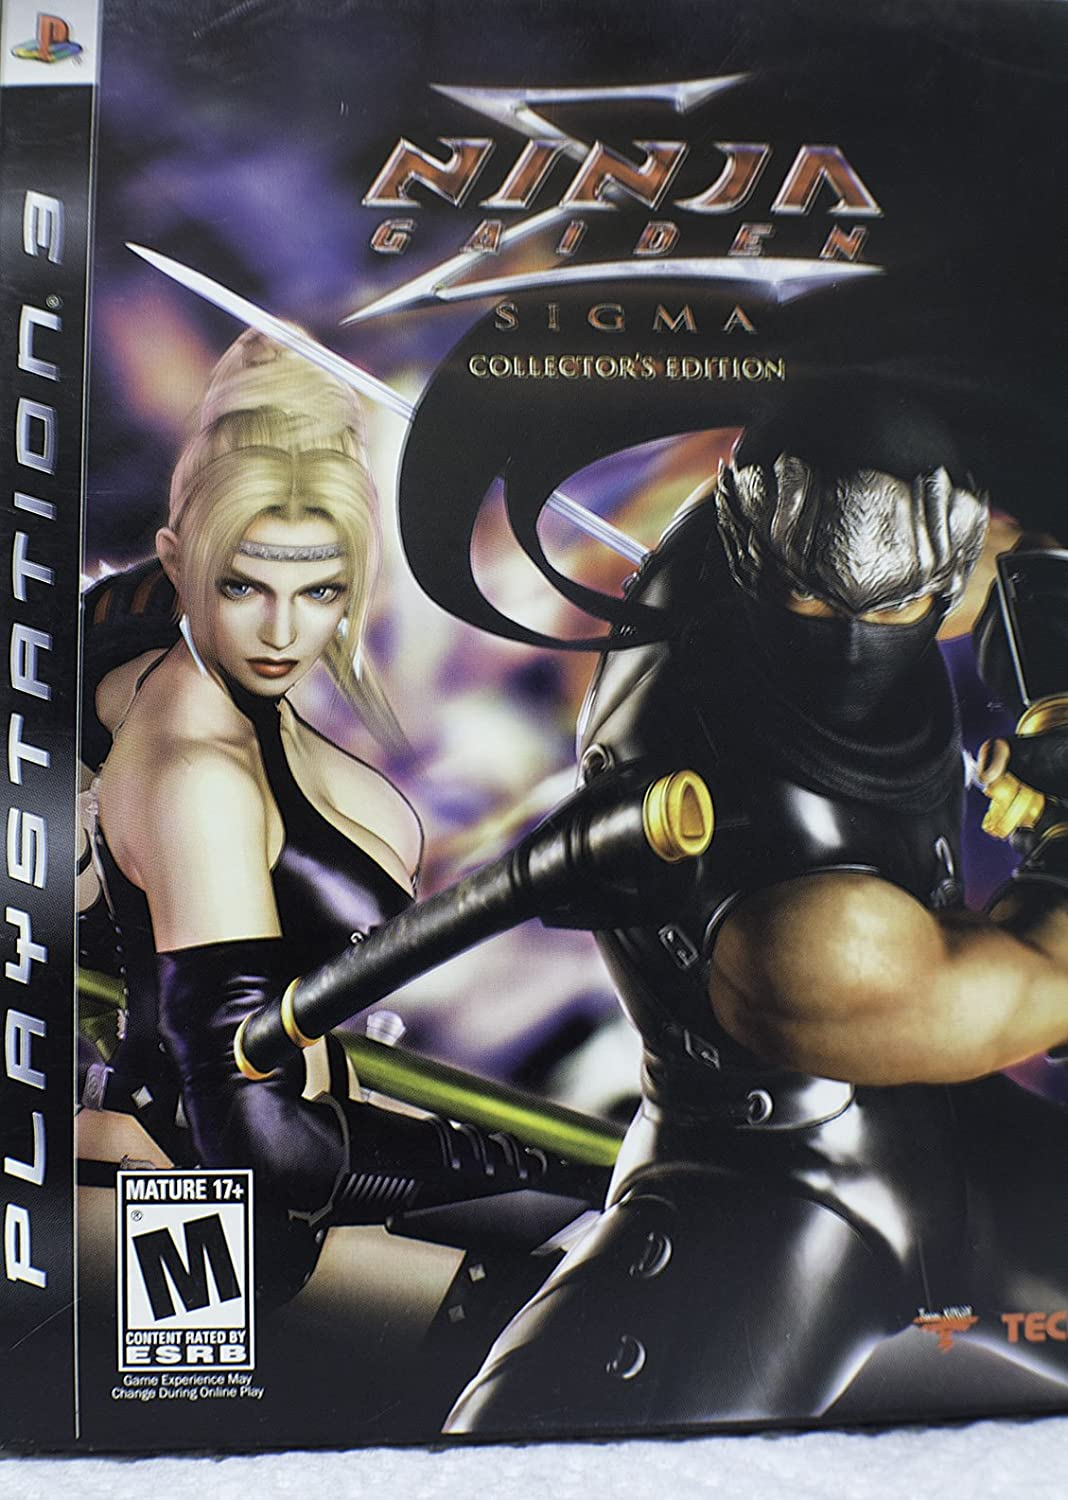 Amazon.com: Ninja Gaiden Sigma Collectors Edition: Video Games